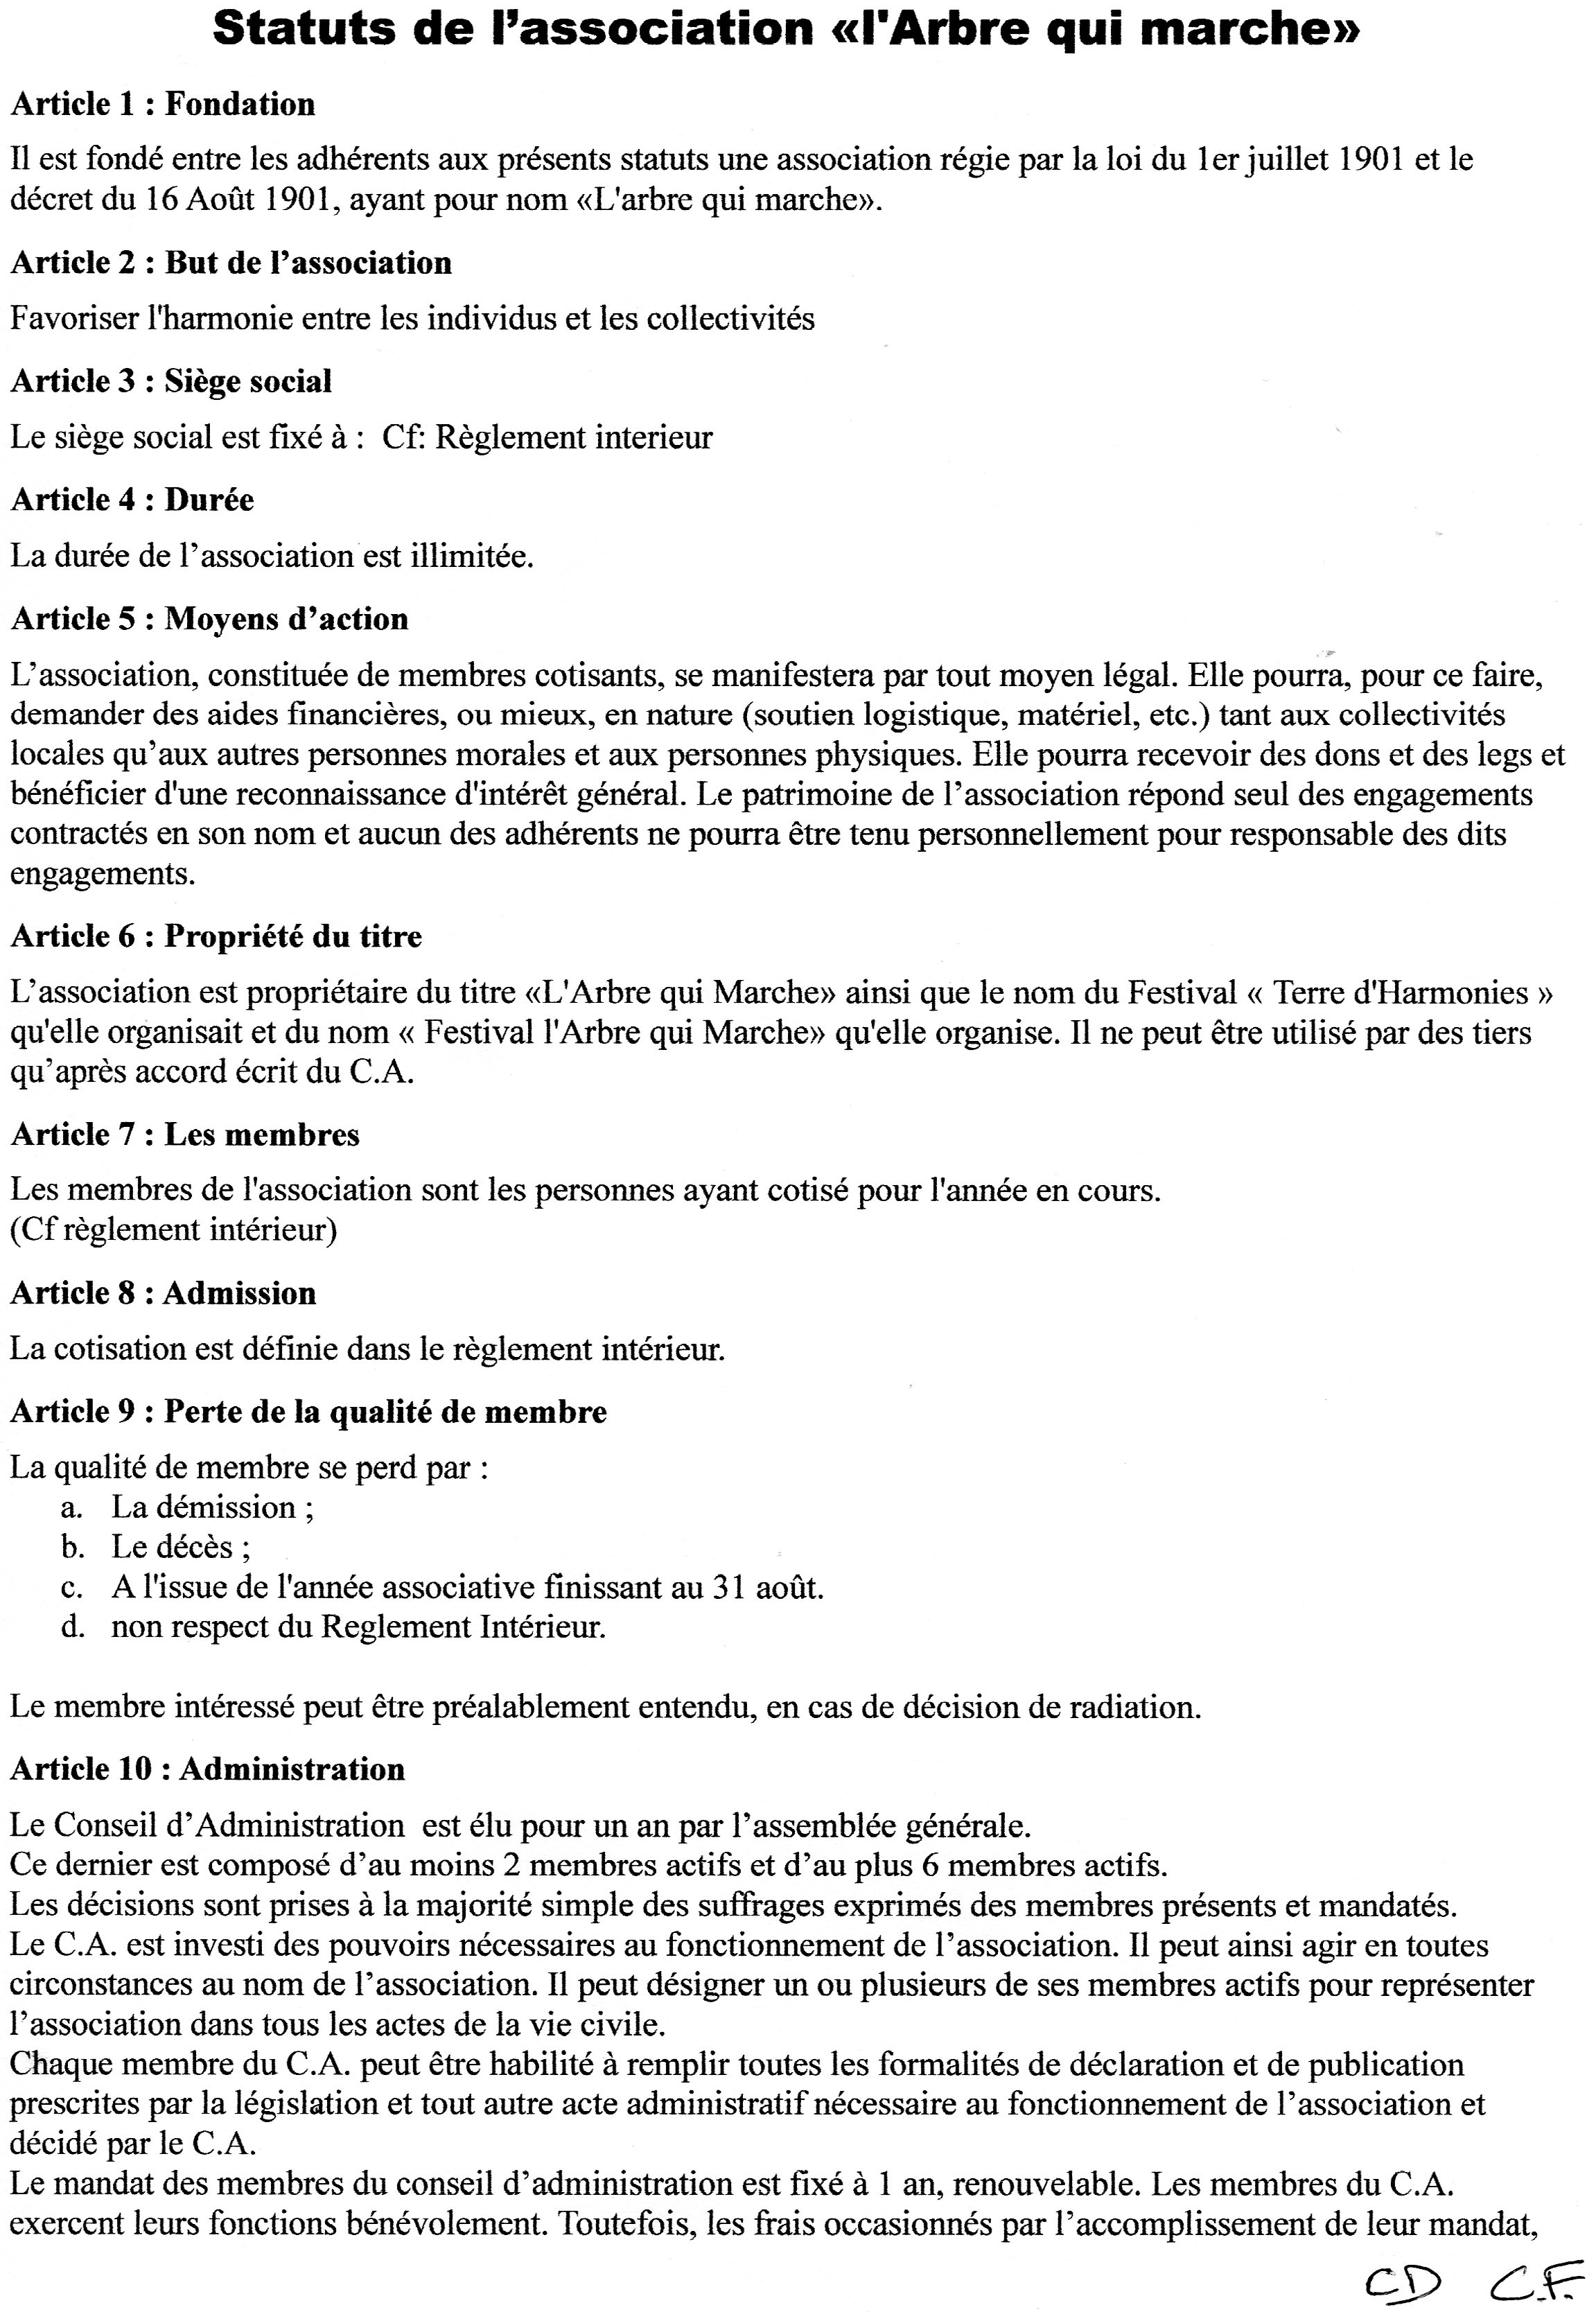 modele statuts association musicale document